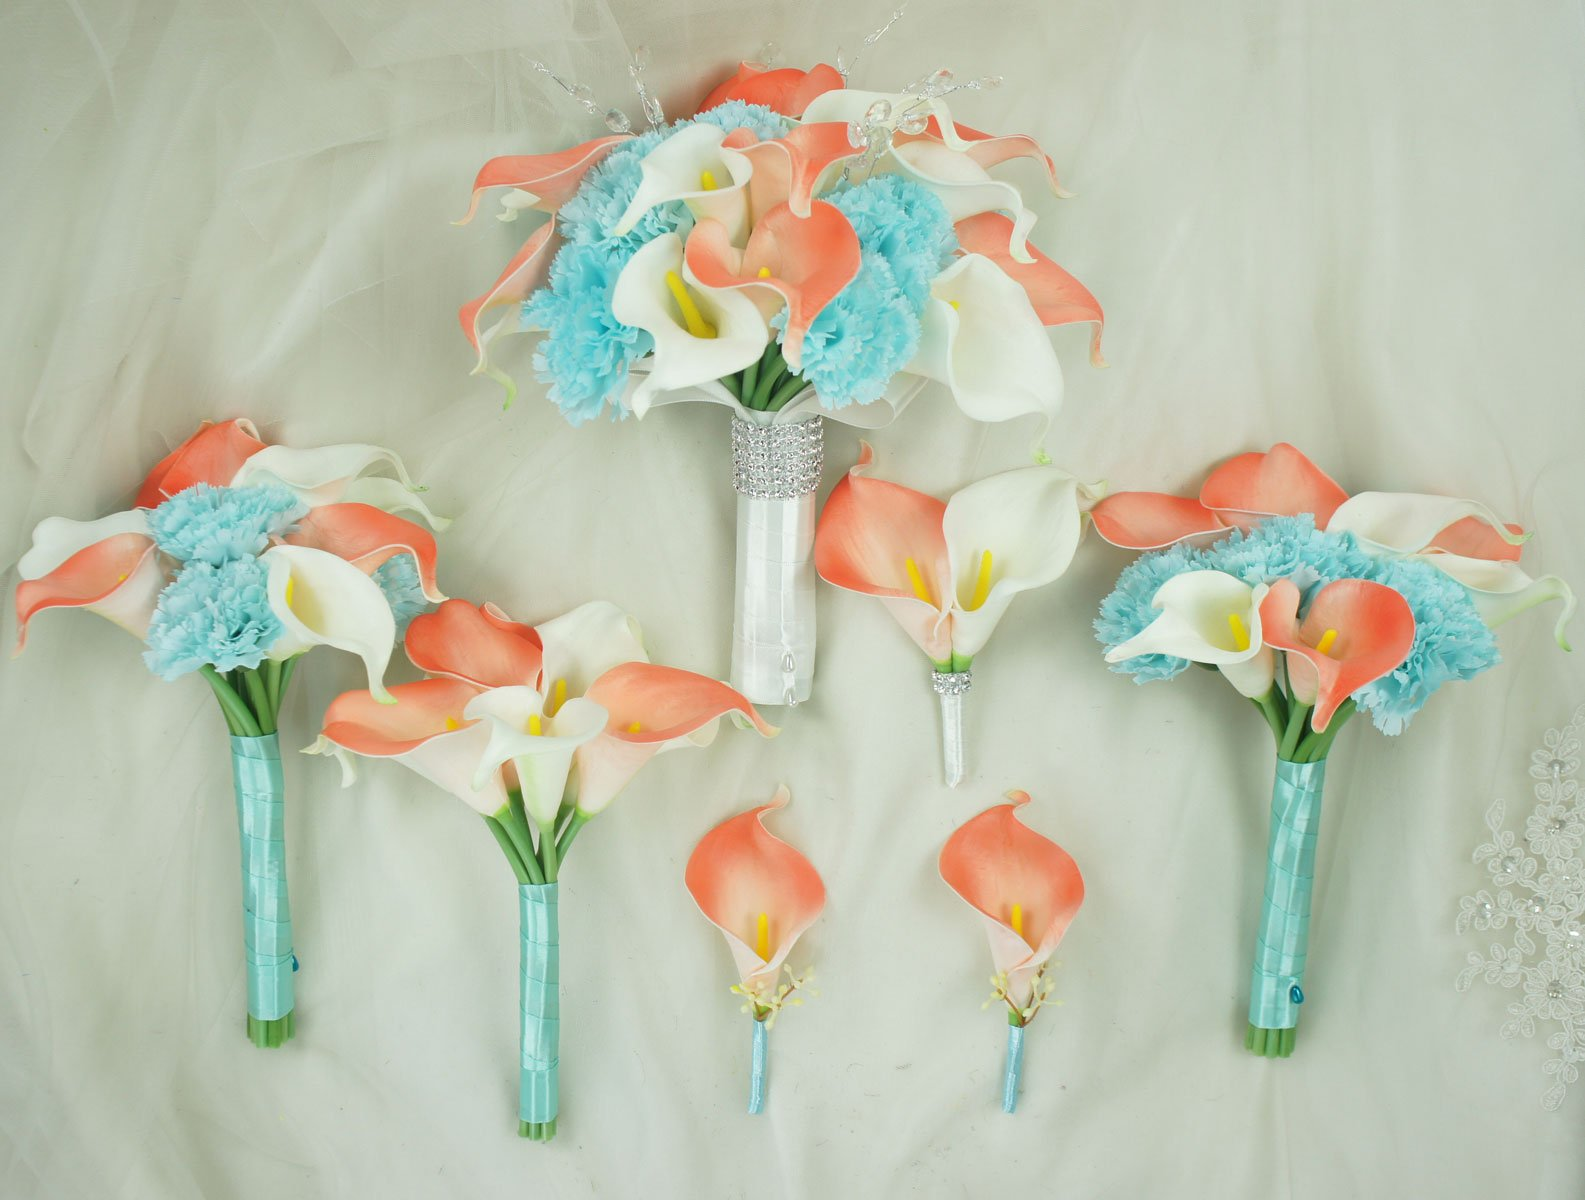 Lily-Garden-Real-Touch-Calla-Lily-Coral-and-White-and-Carnation-Turquoise-Flowers-Wedding-Bouquet